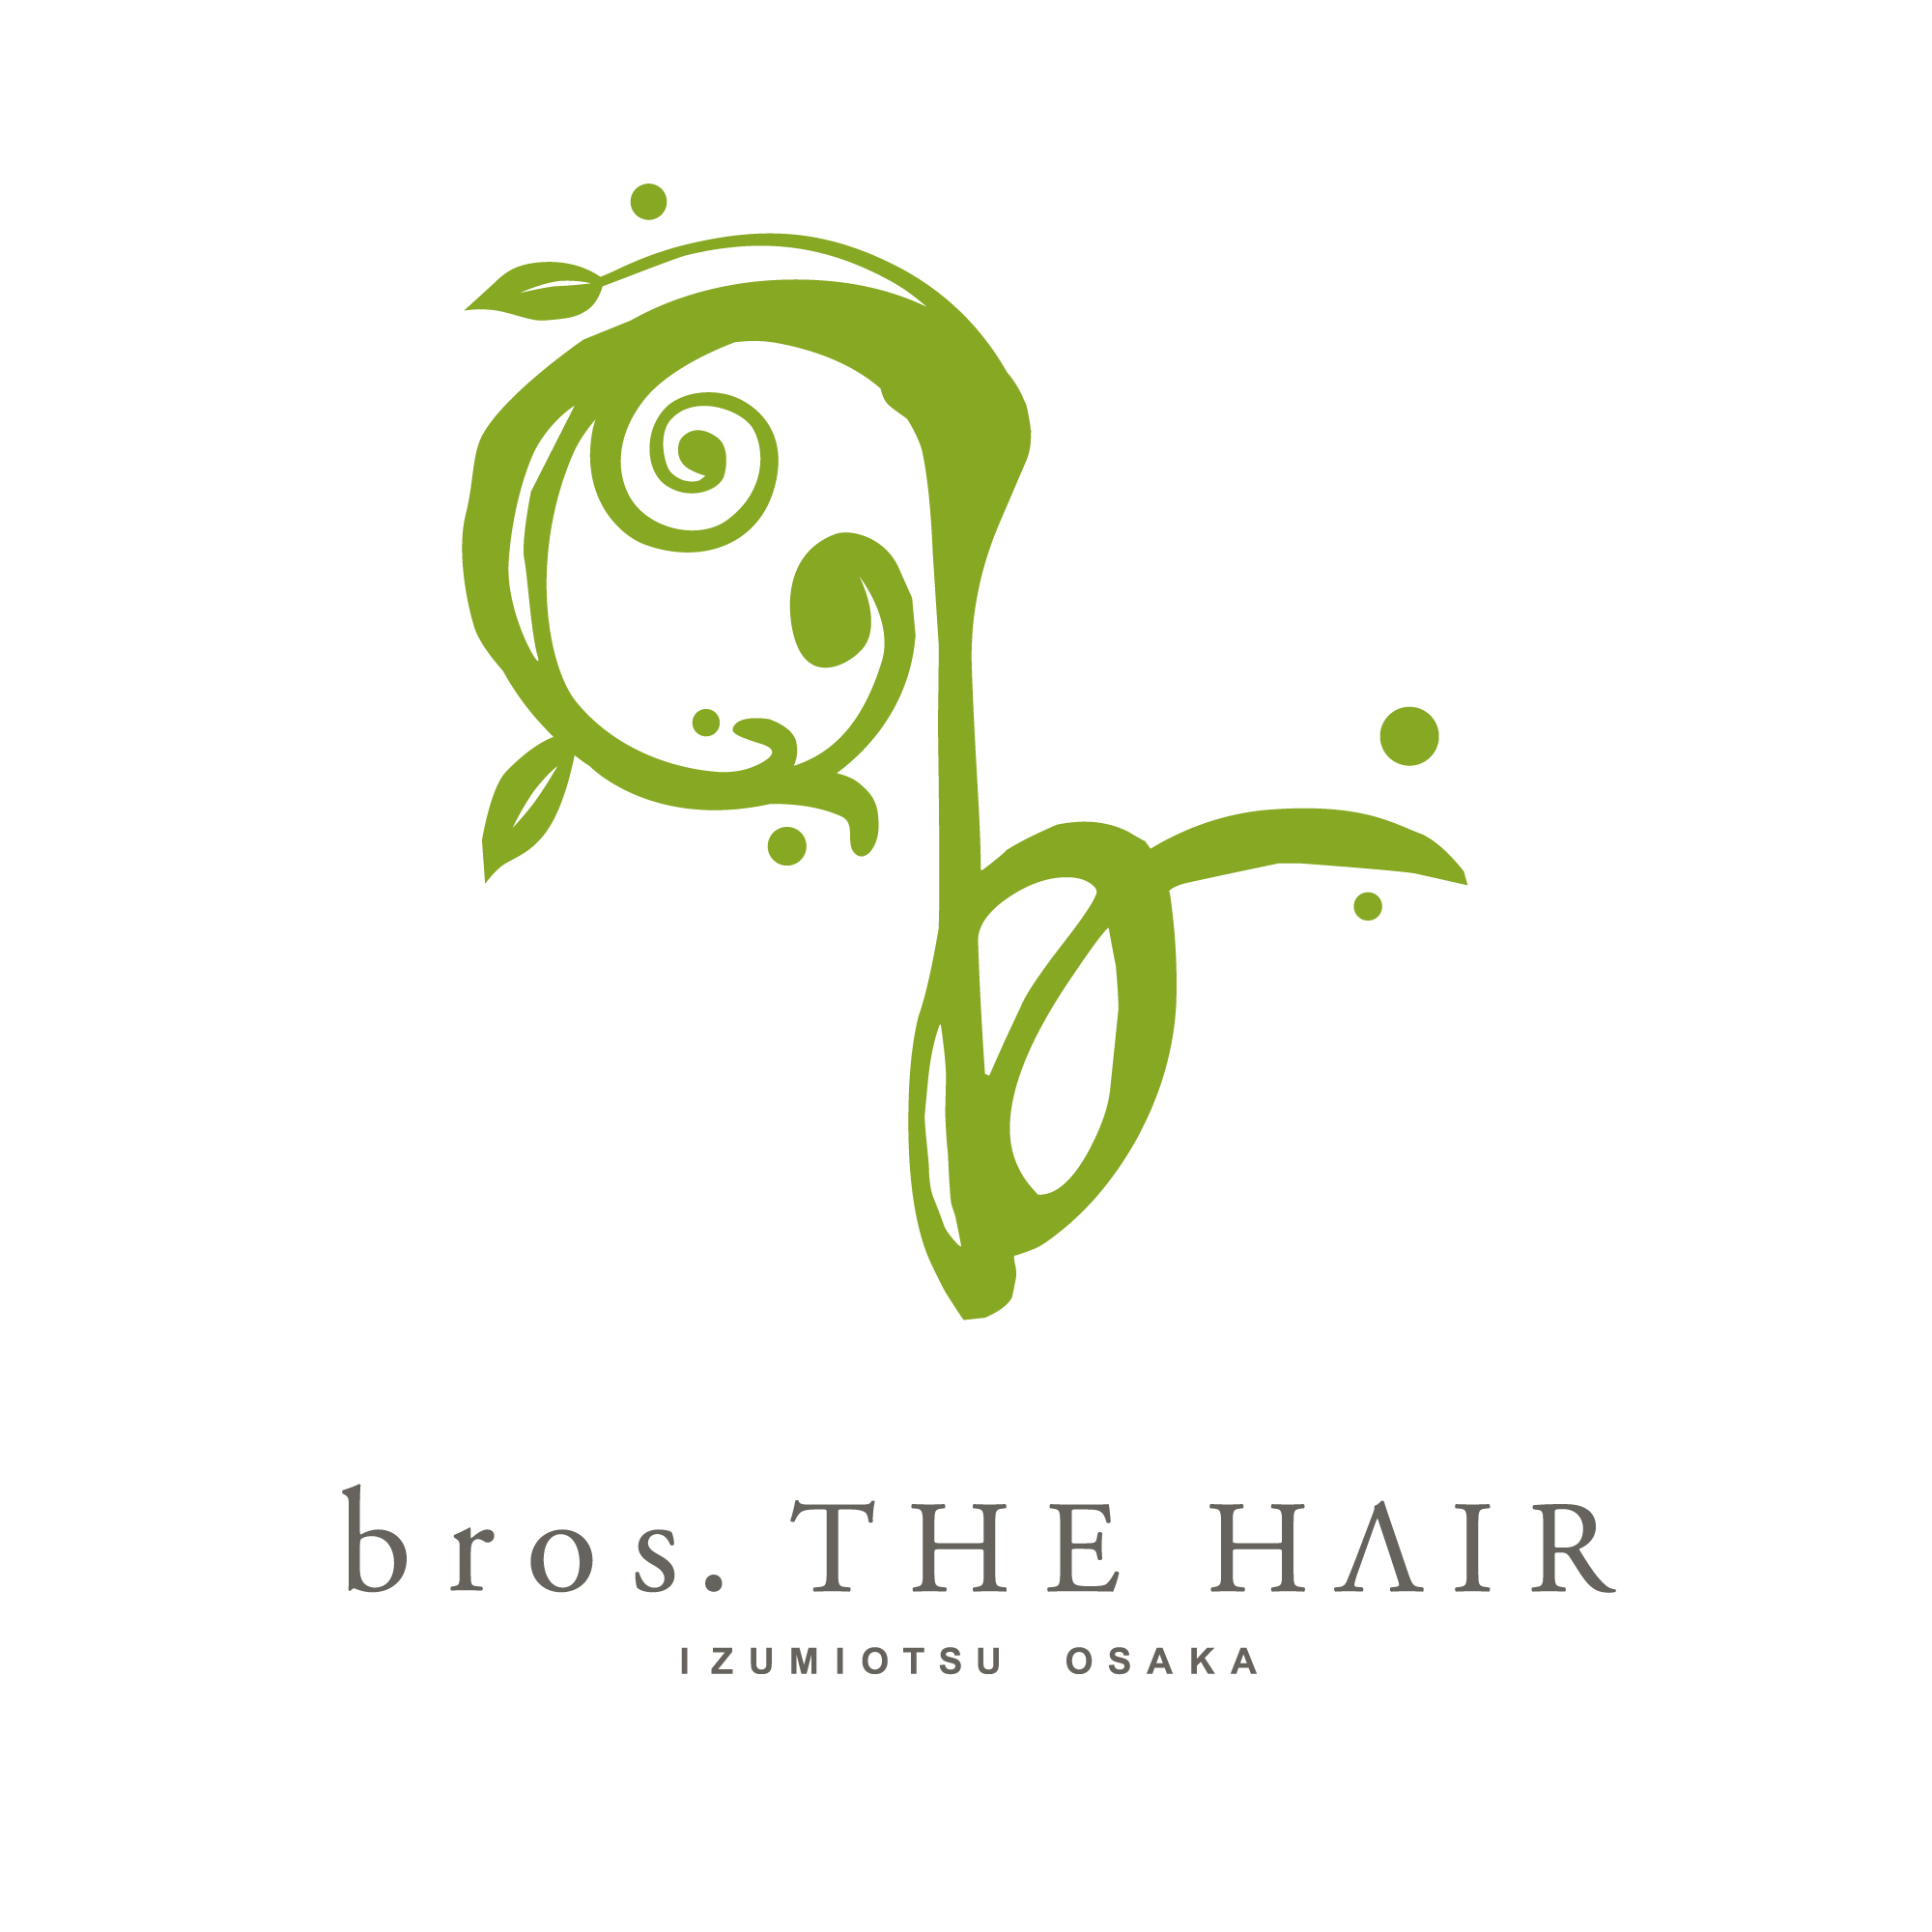 bros.THE HAIR 【ブロス ザ・ヘアー】 求人情報